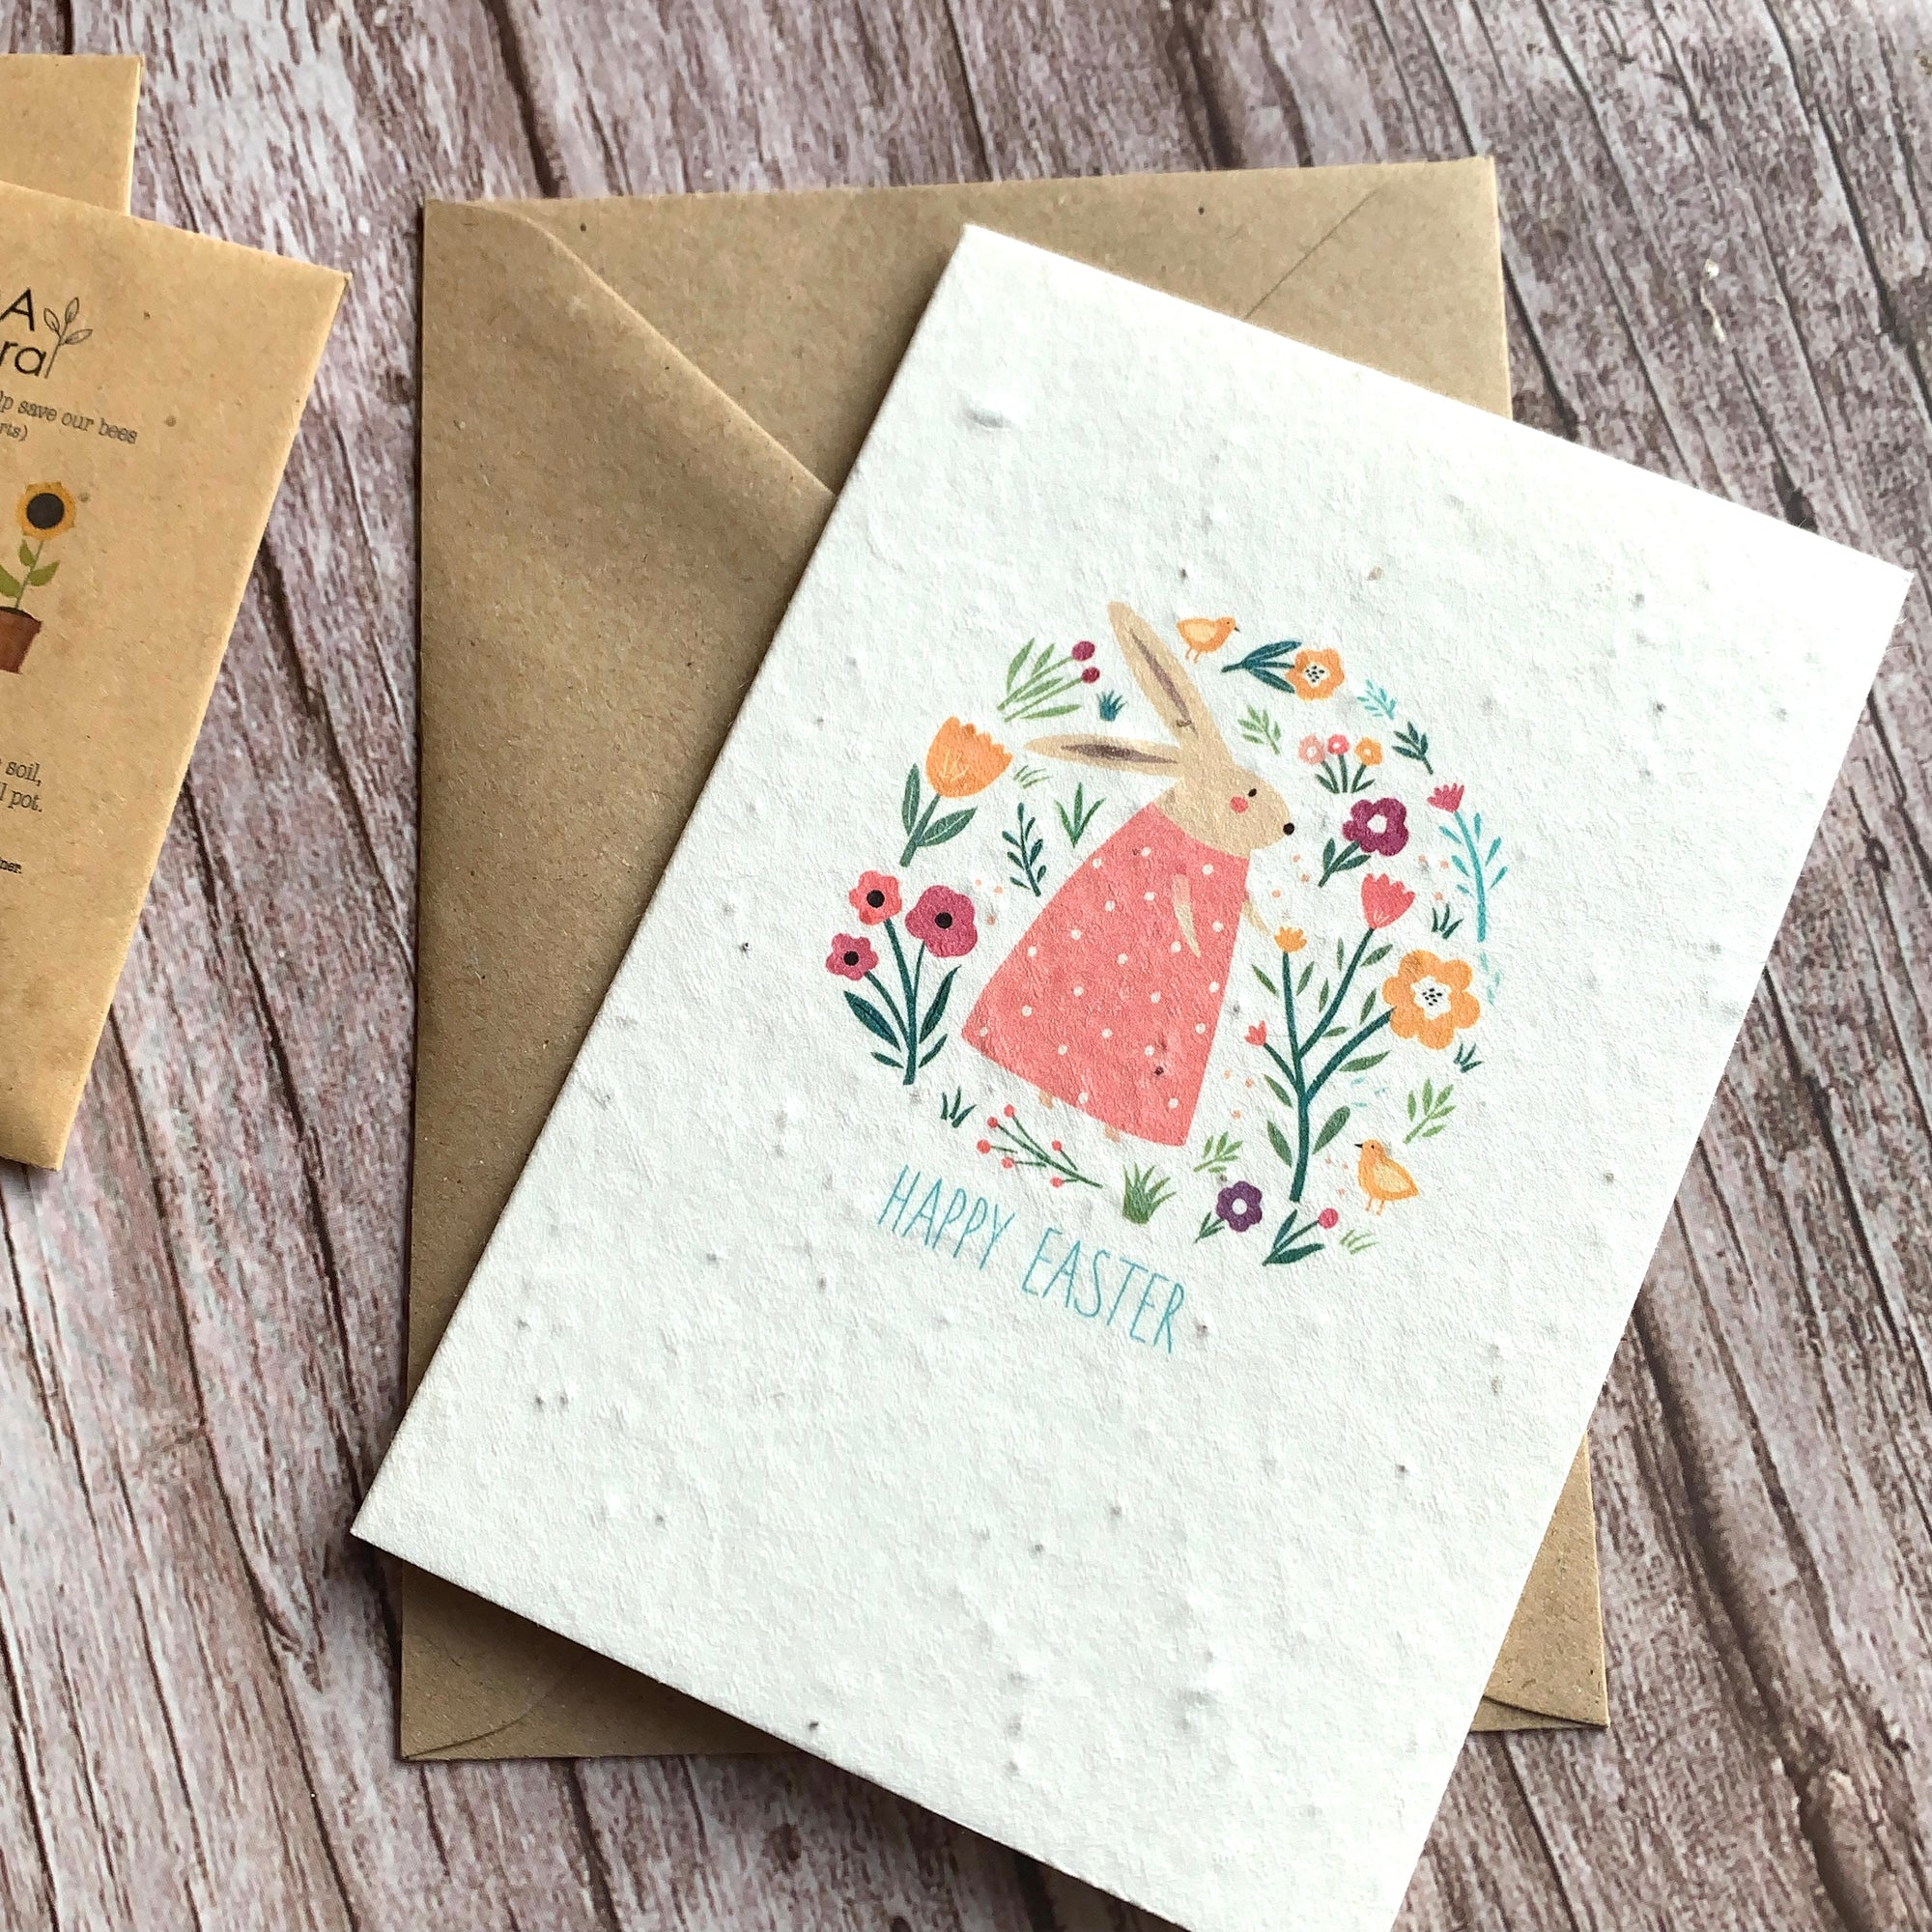 easter cards made with ecofriendly paper that is recycled and with flower seeds